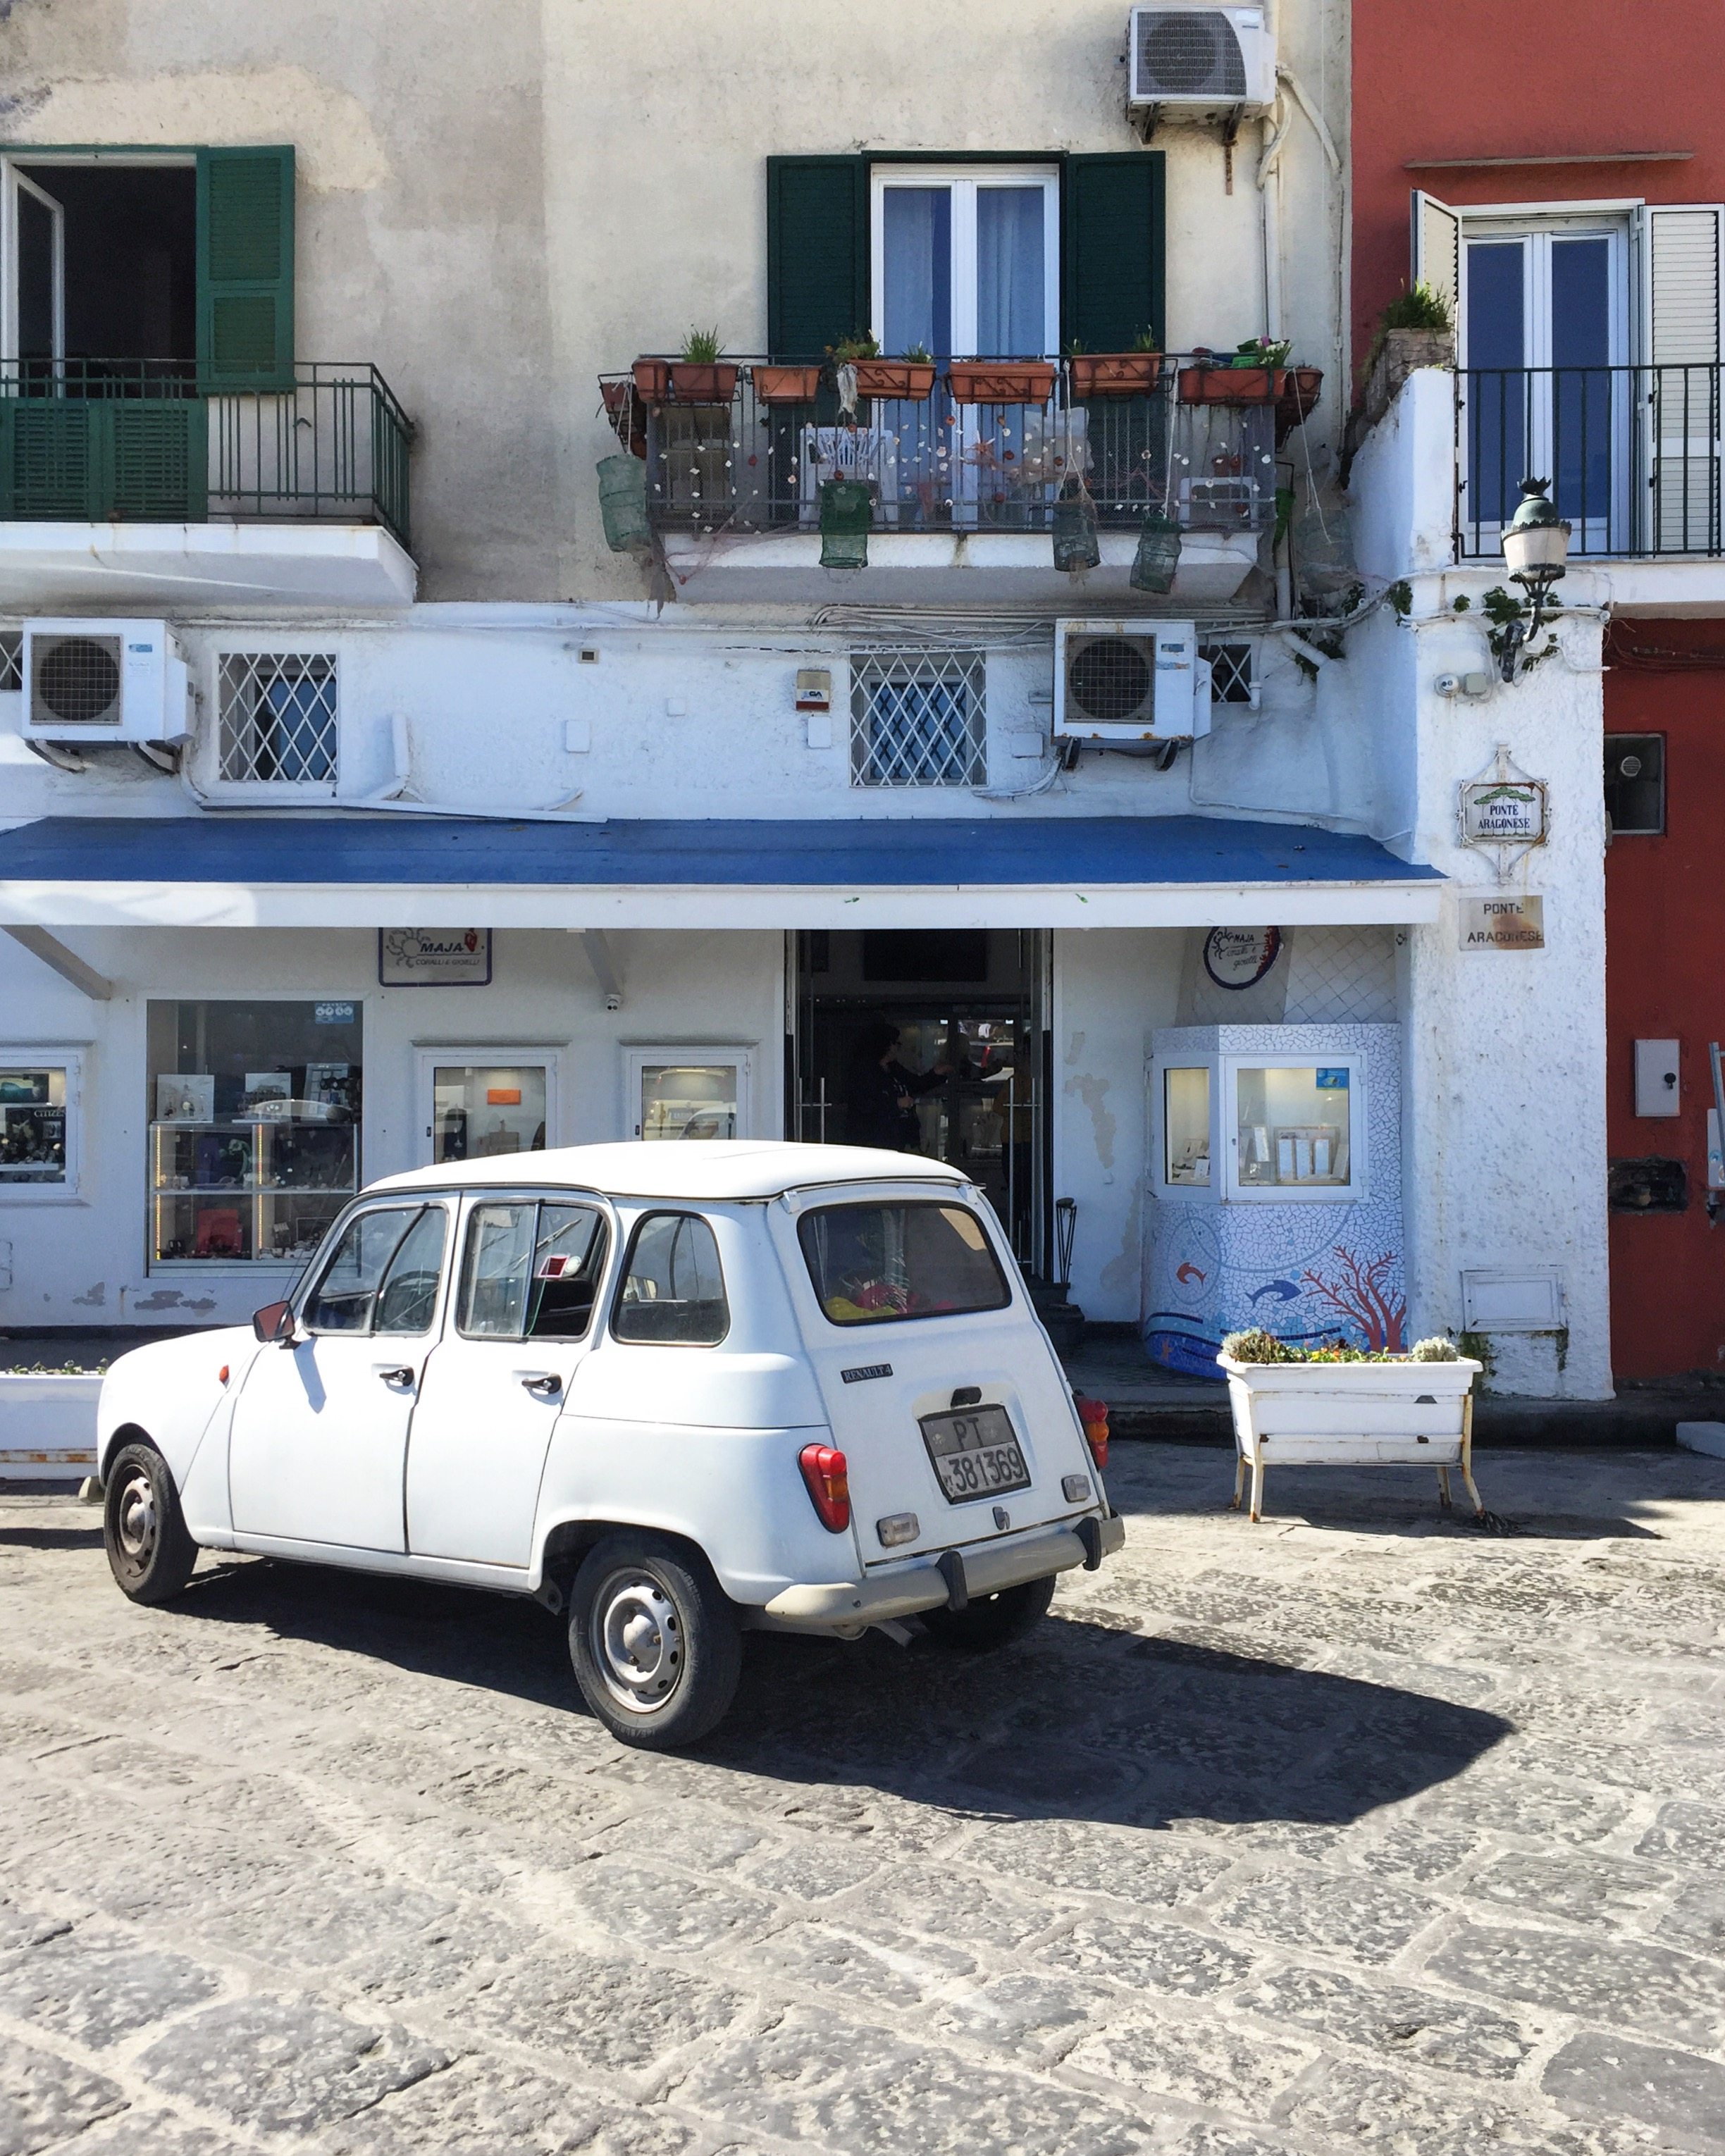 This Is the Ischia of Elena Ferrante's Neapolitan Novels (Fodor's Travel)   With HBO turning the mysterious author's novels into a TV series, one writer goes on a quest to find the midcentury vacation destination featured in the books